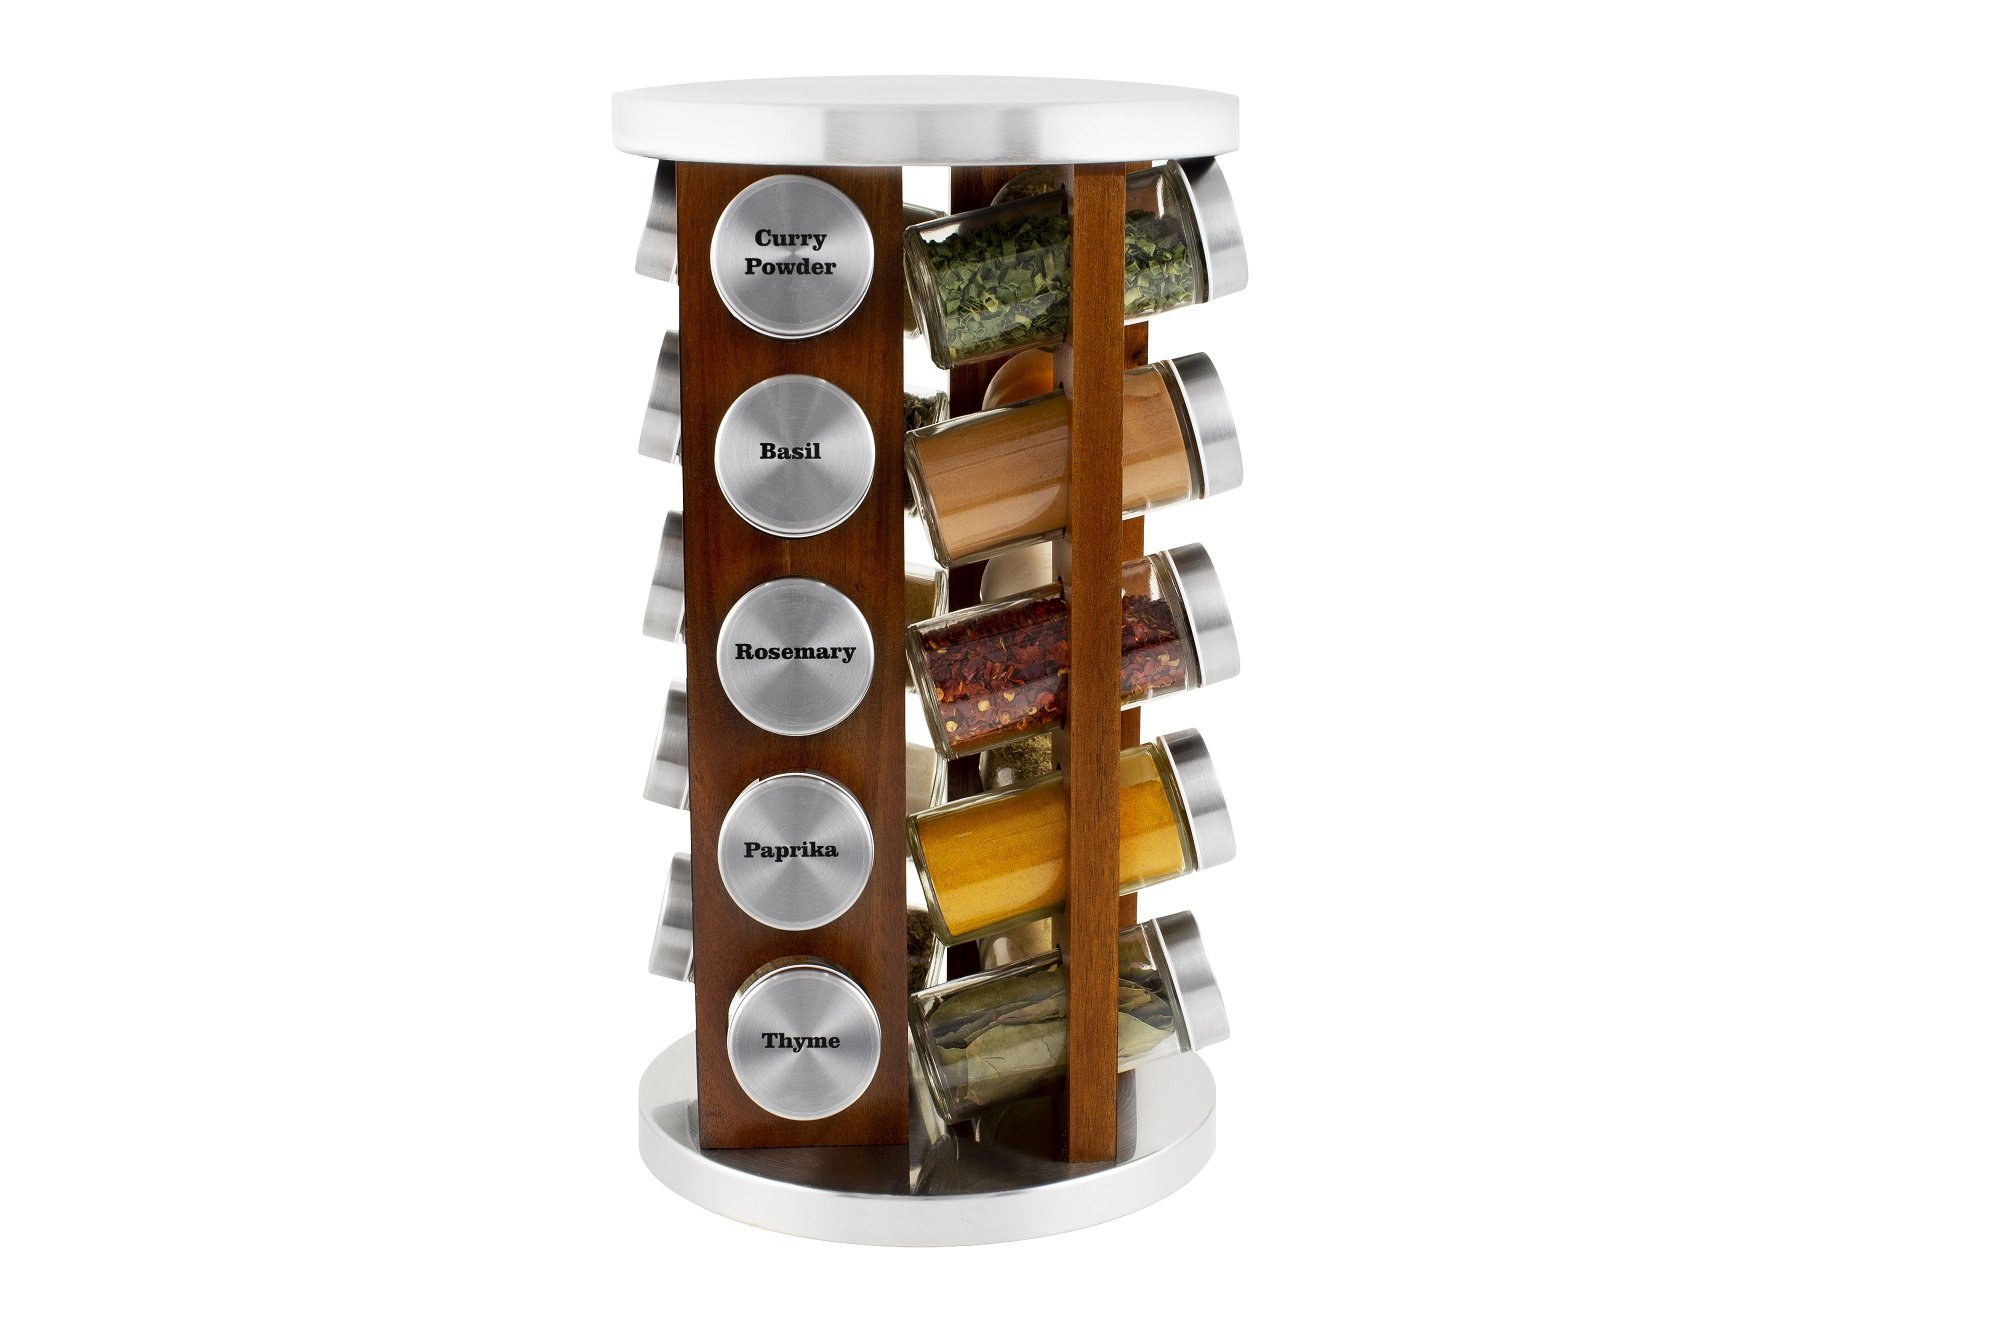 orii 20 jar acacia wood spice rack dark stain filled with spices